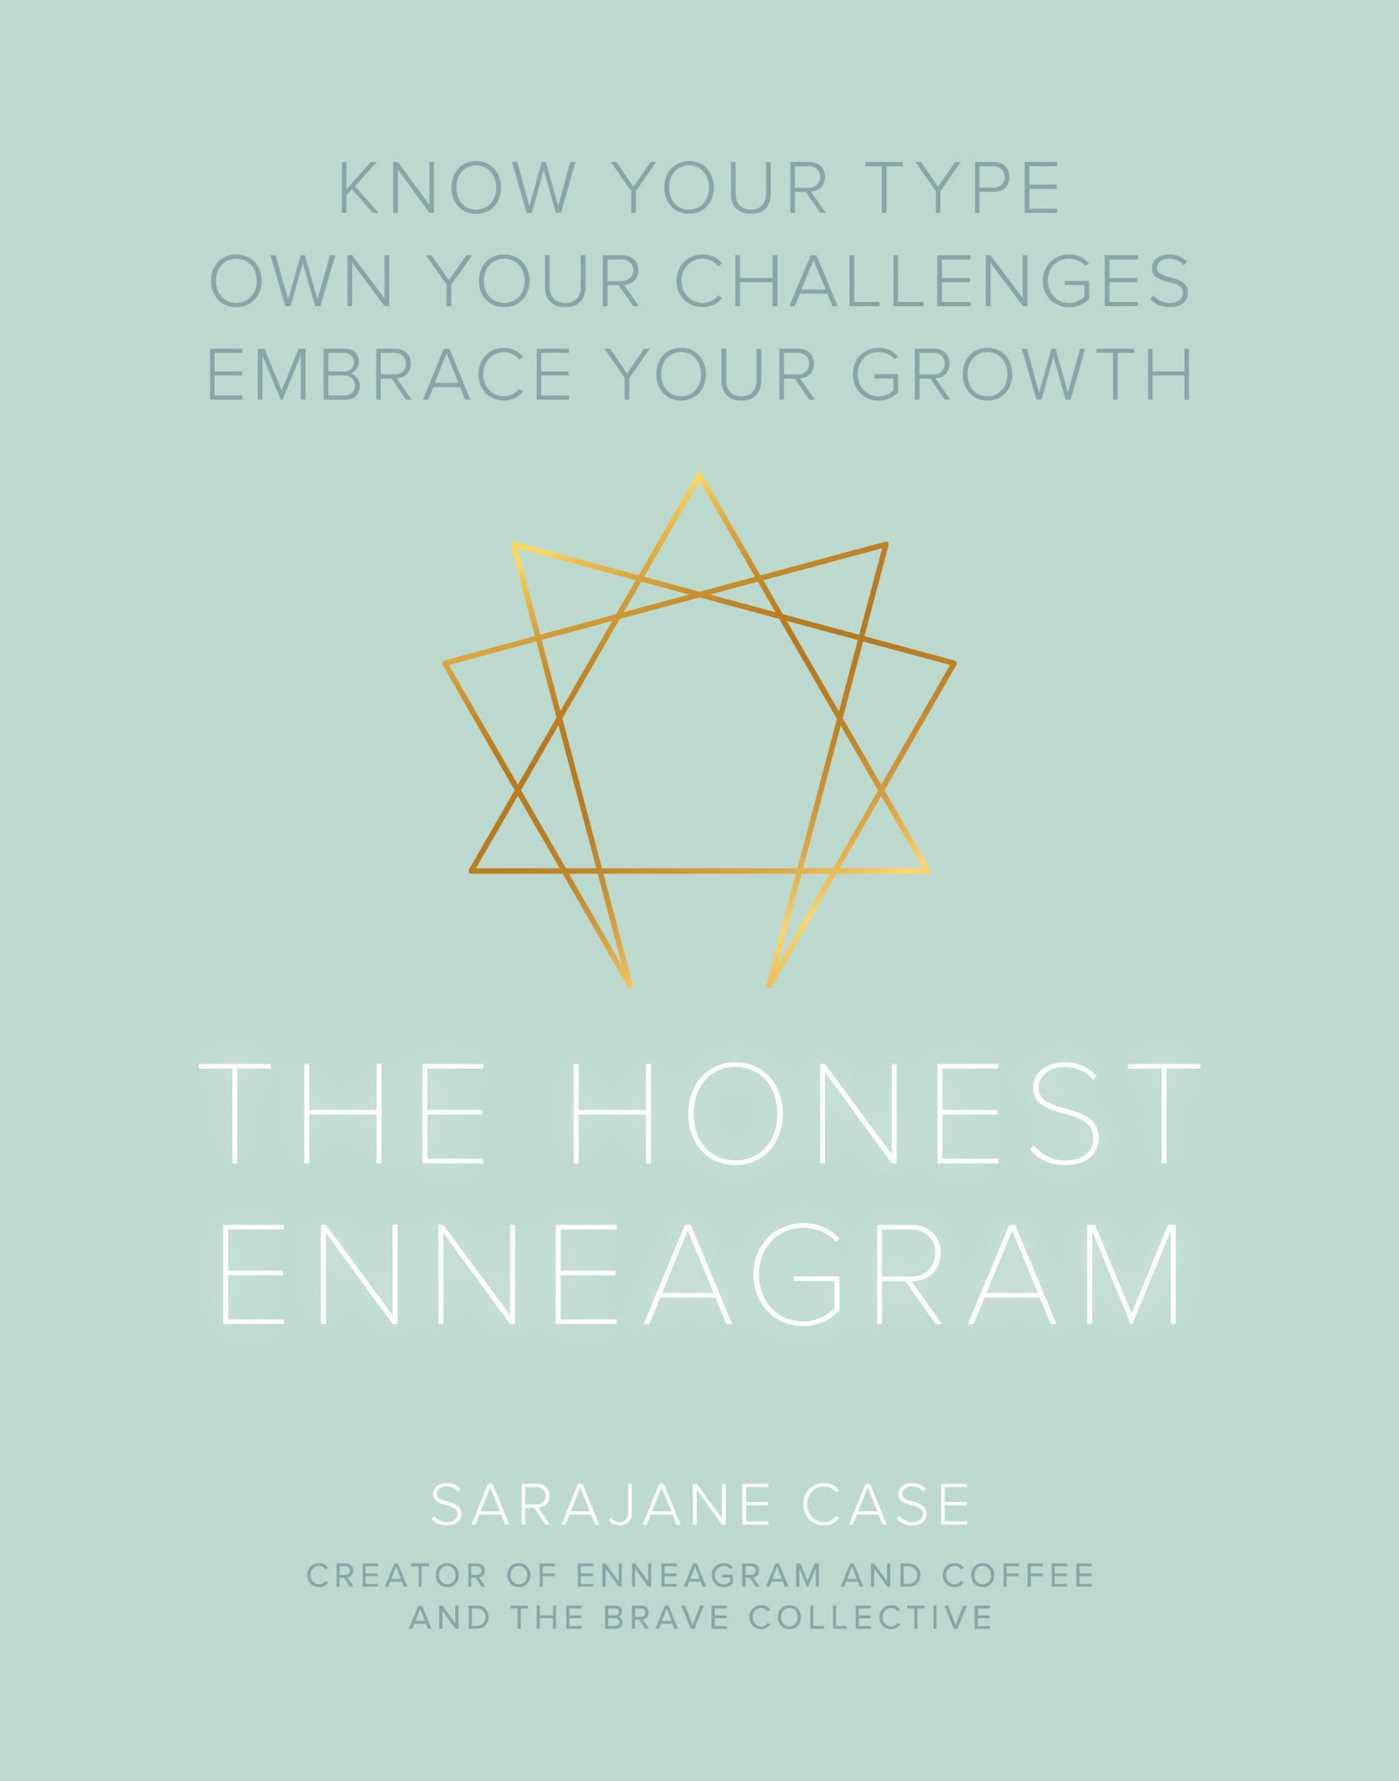 The Honest Enneagram by Sarajane Case